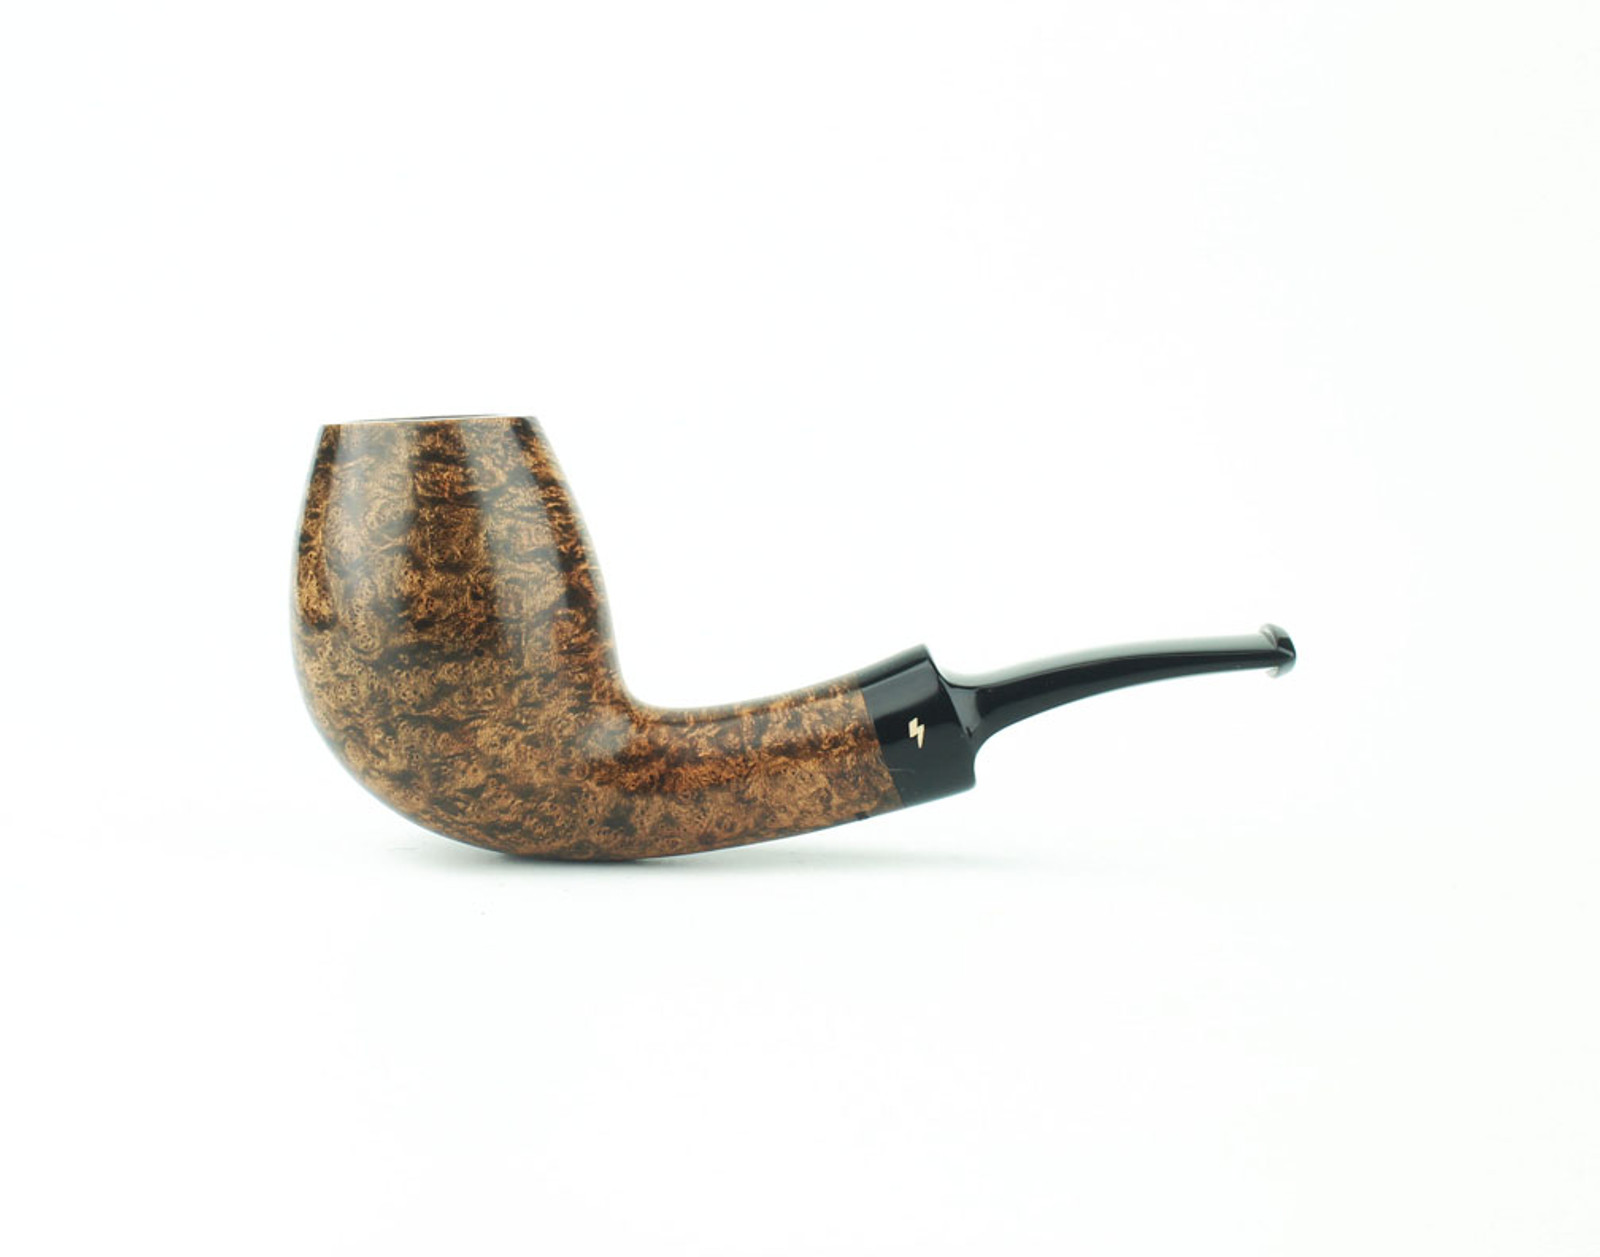 MS05DS B - Moonshine Bent Egg - Dark Contrast Smooth w/ Black Stem